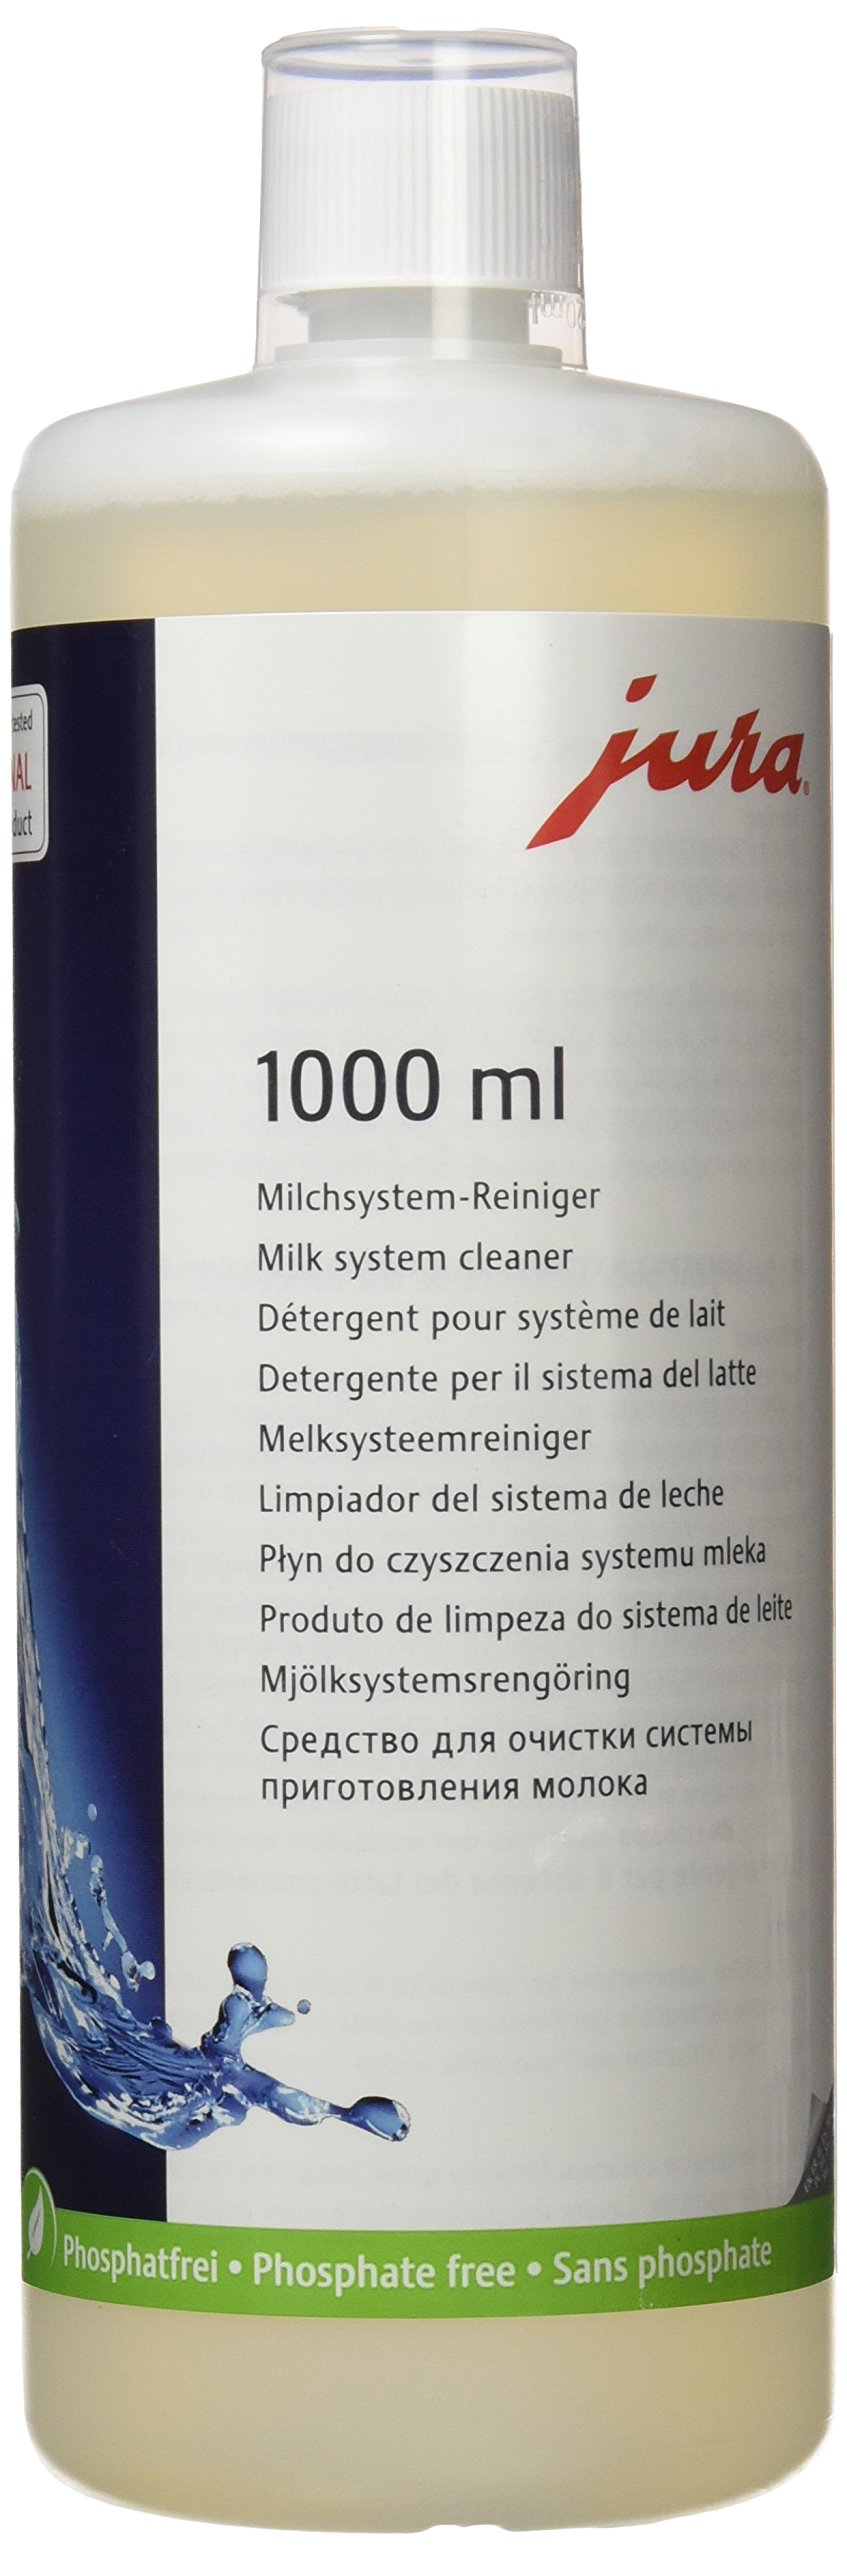 Jura Cappuccino Cleaner for Fully Automatic Machines with Frothing Systems, 1000 mL by Jura (Image #1)